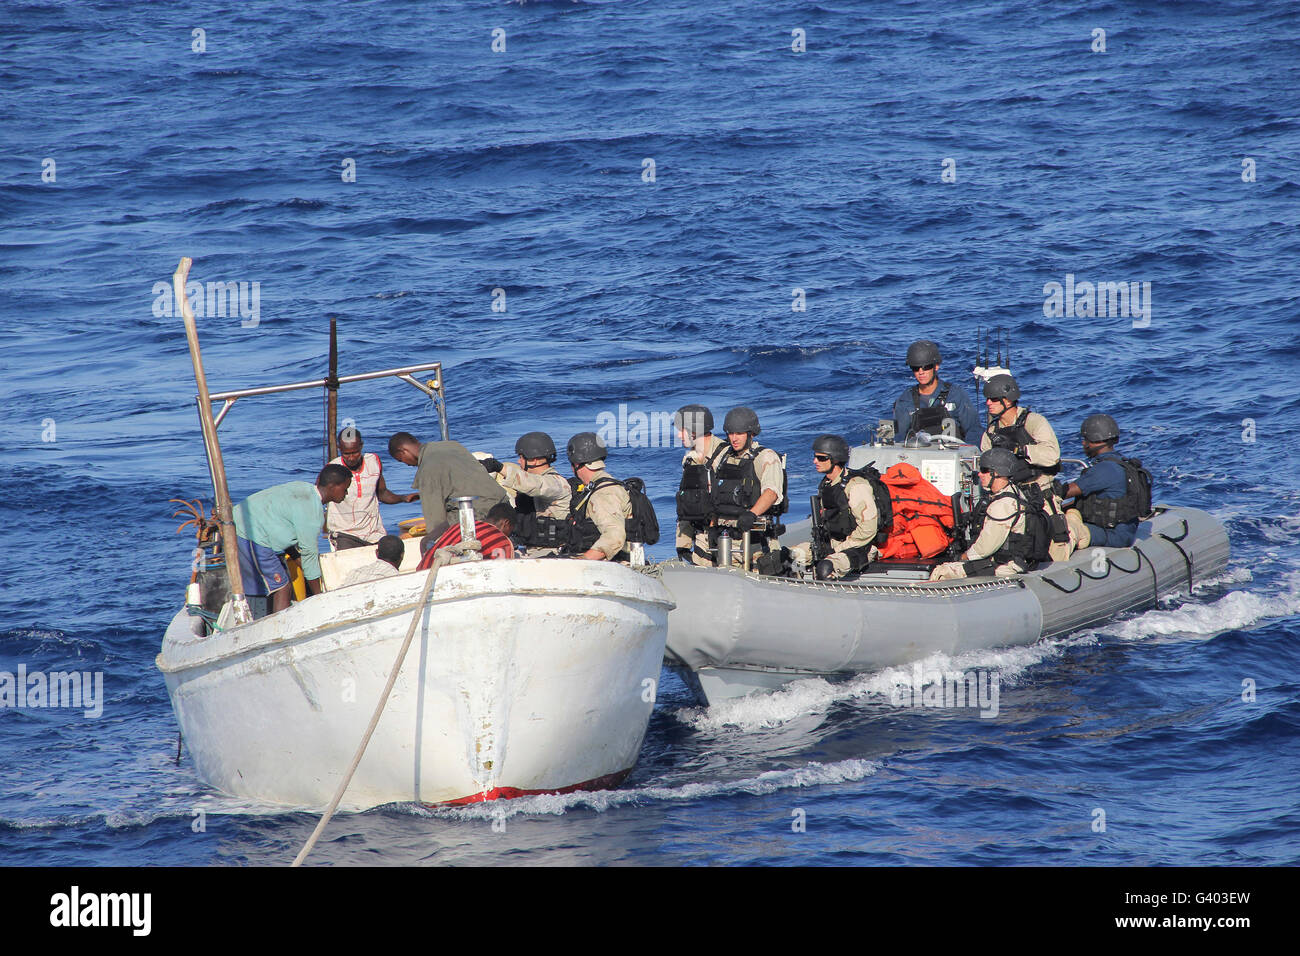 A visit, board, search and seizure team assist stranded Somali fishermen. - Stock Image